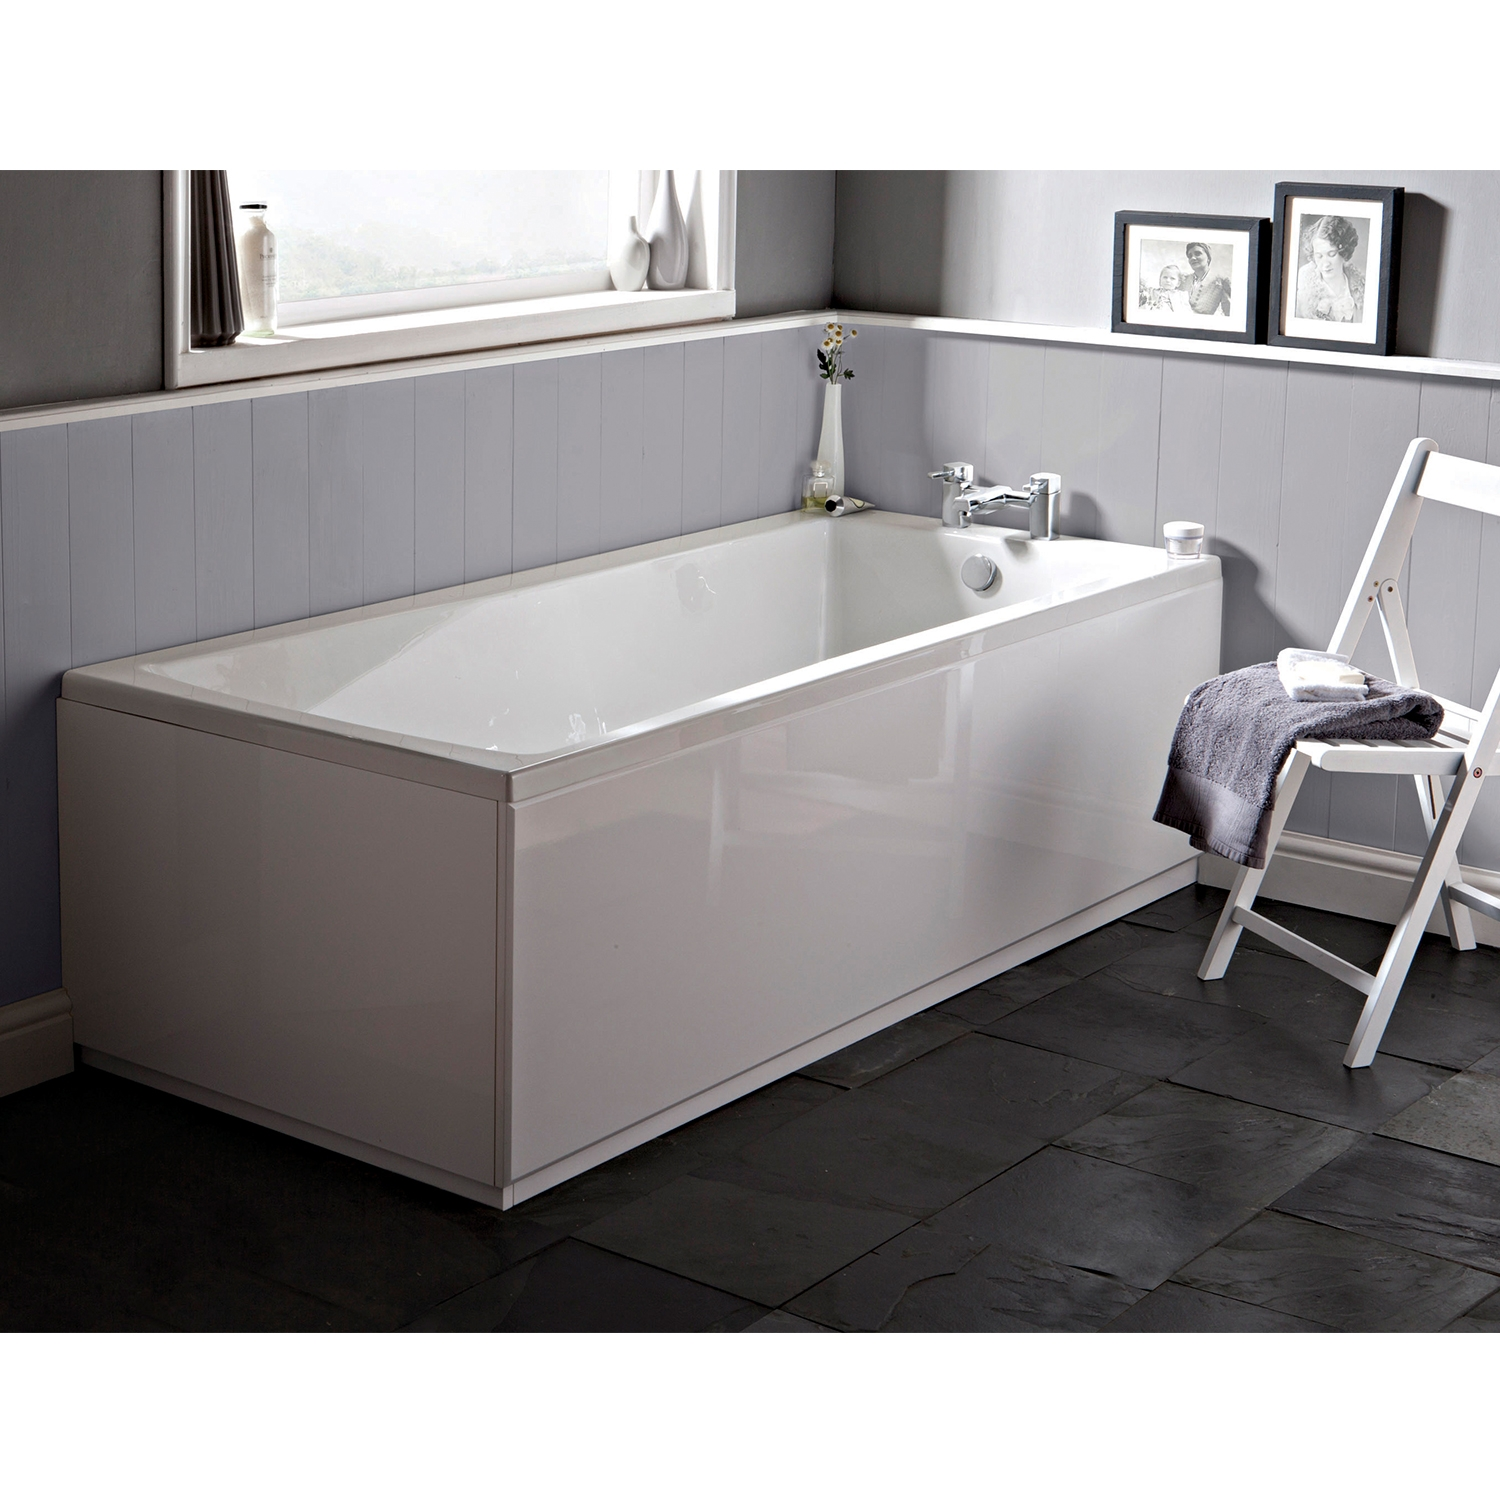 Hudson Reed Linton Single Ended Rectangular Bath 1700mm x 700mm - Eternalite-0